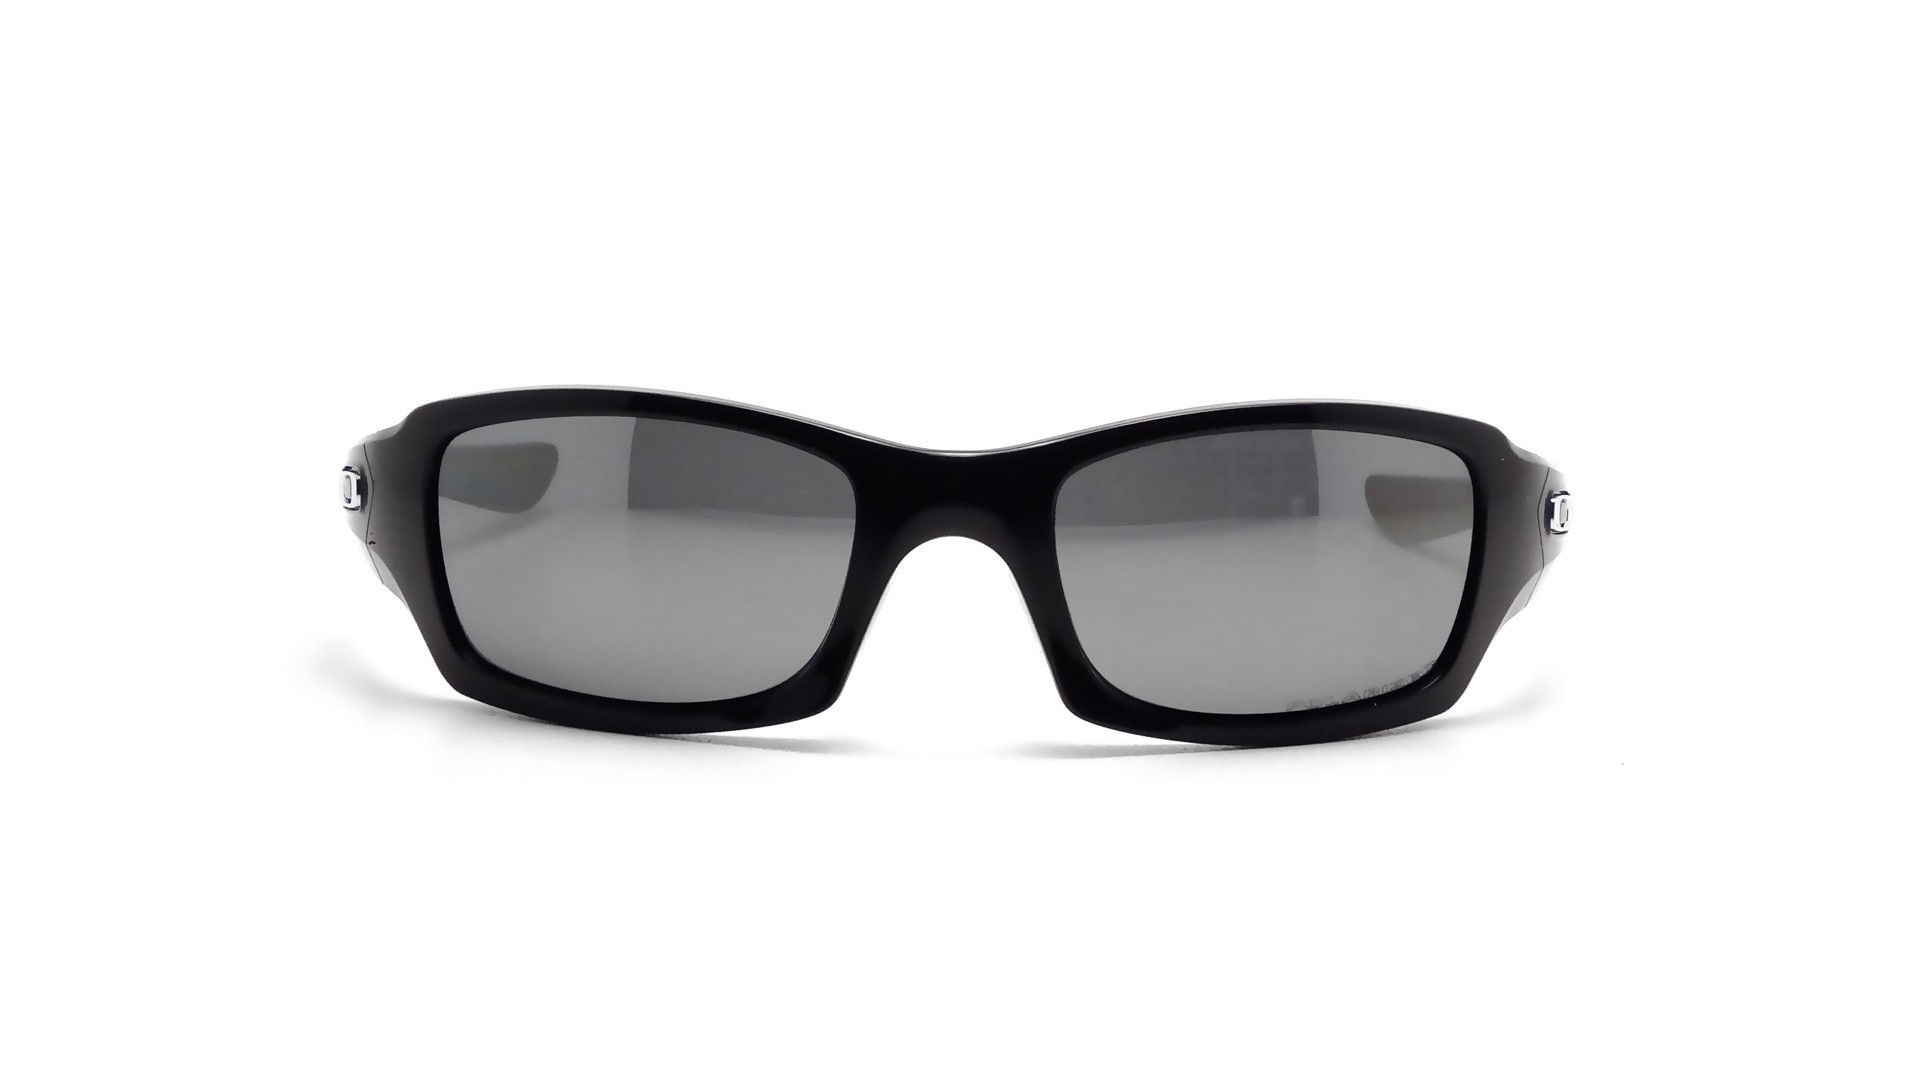 oakley fives squared  Fives Squared Black OO9238 06 54-20 Polarized